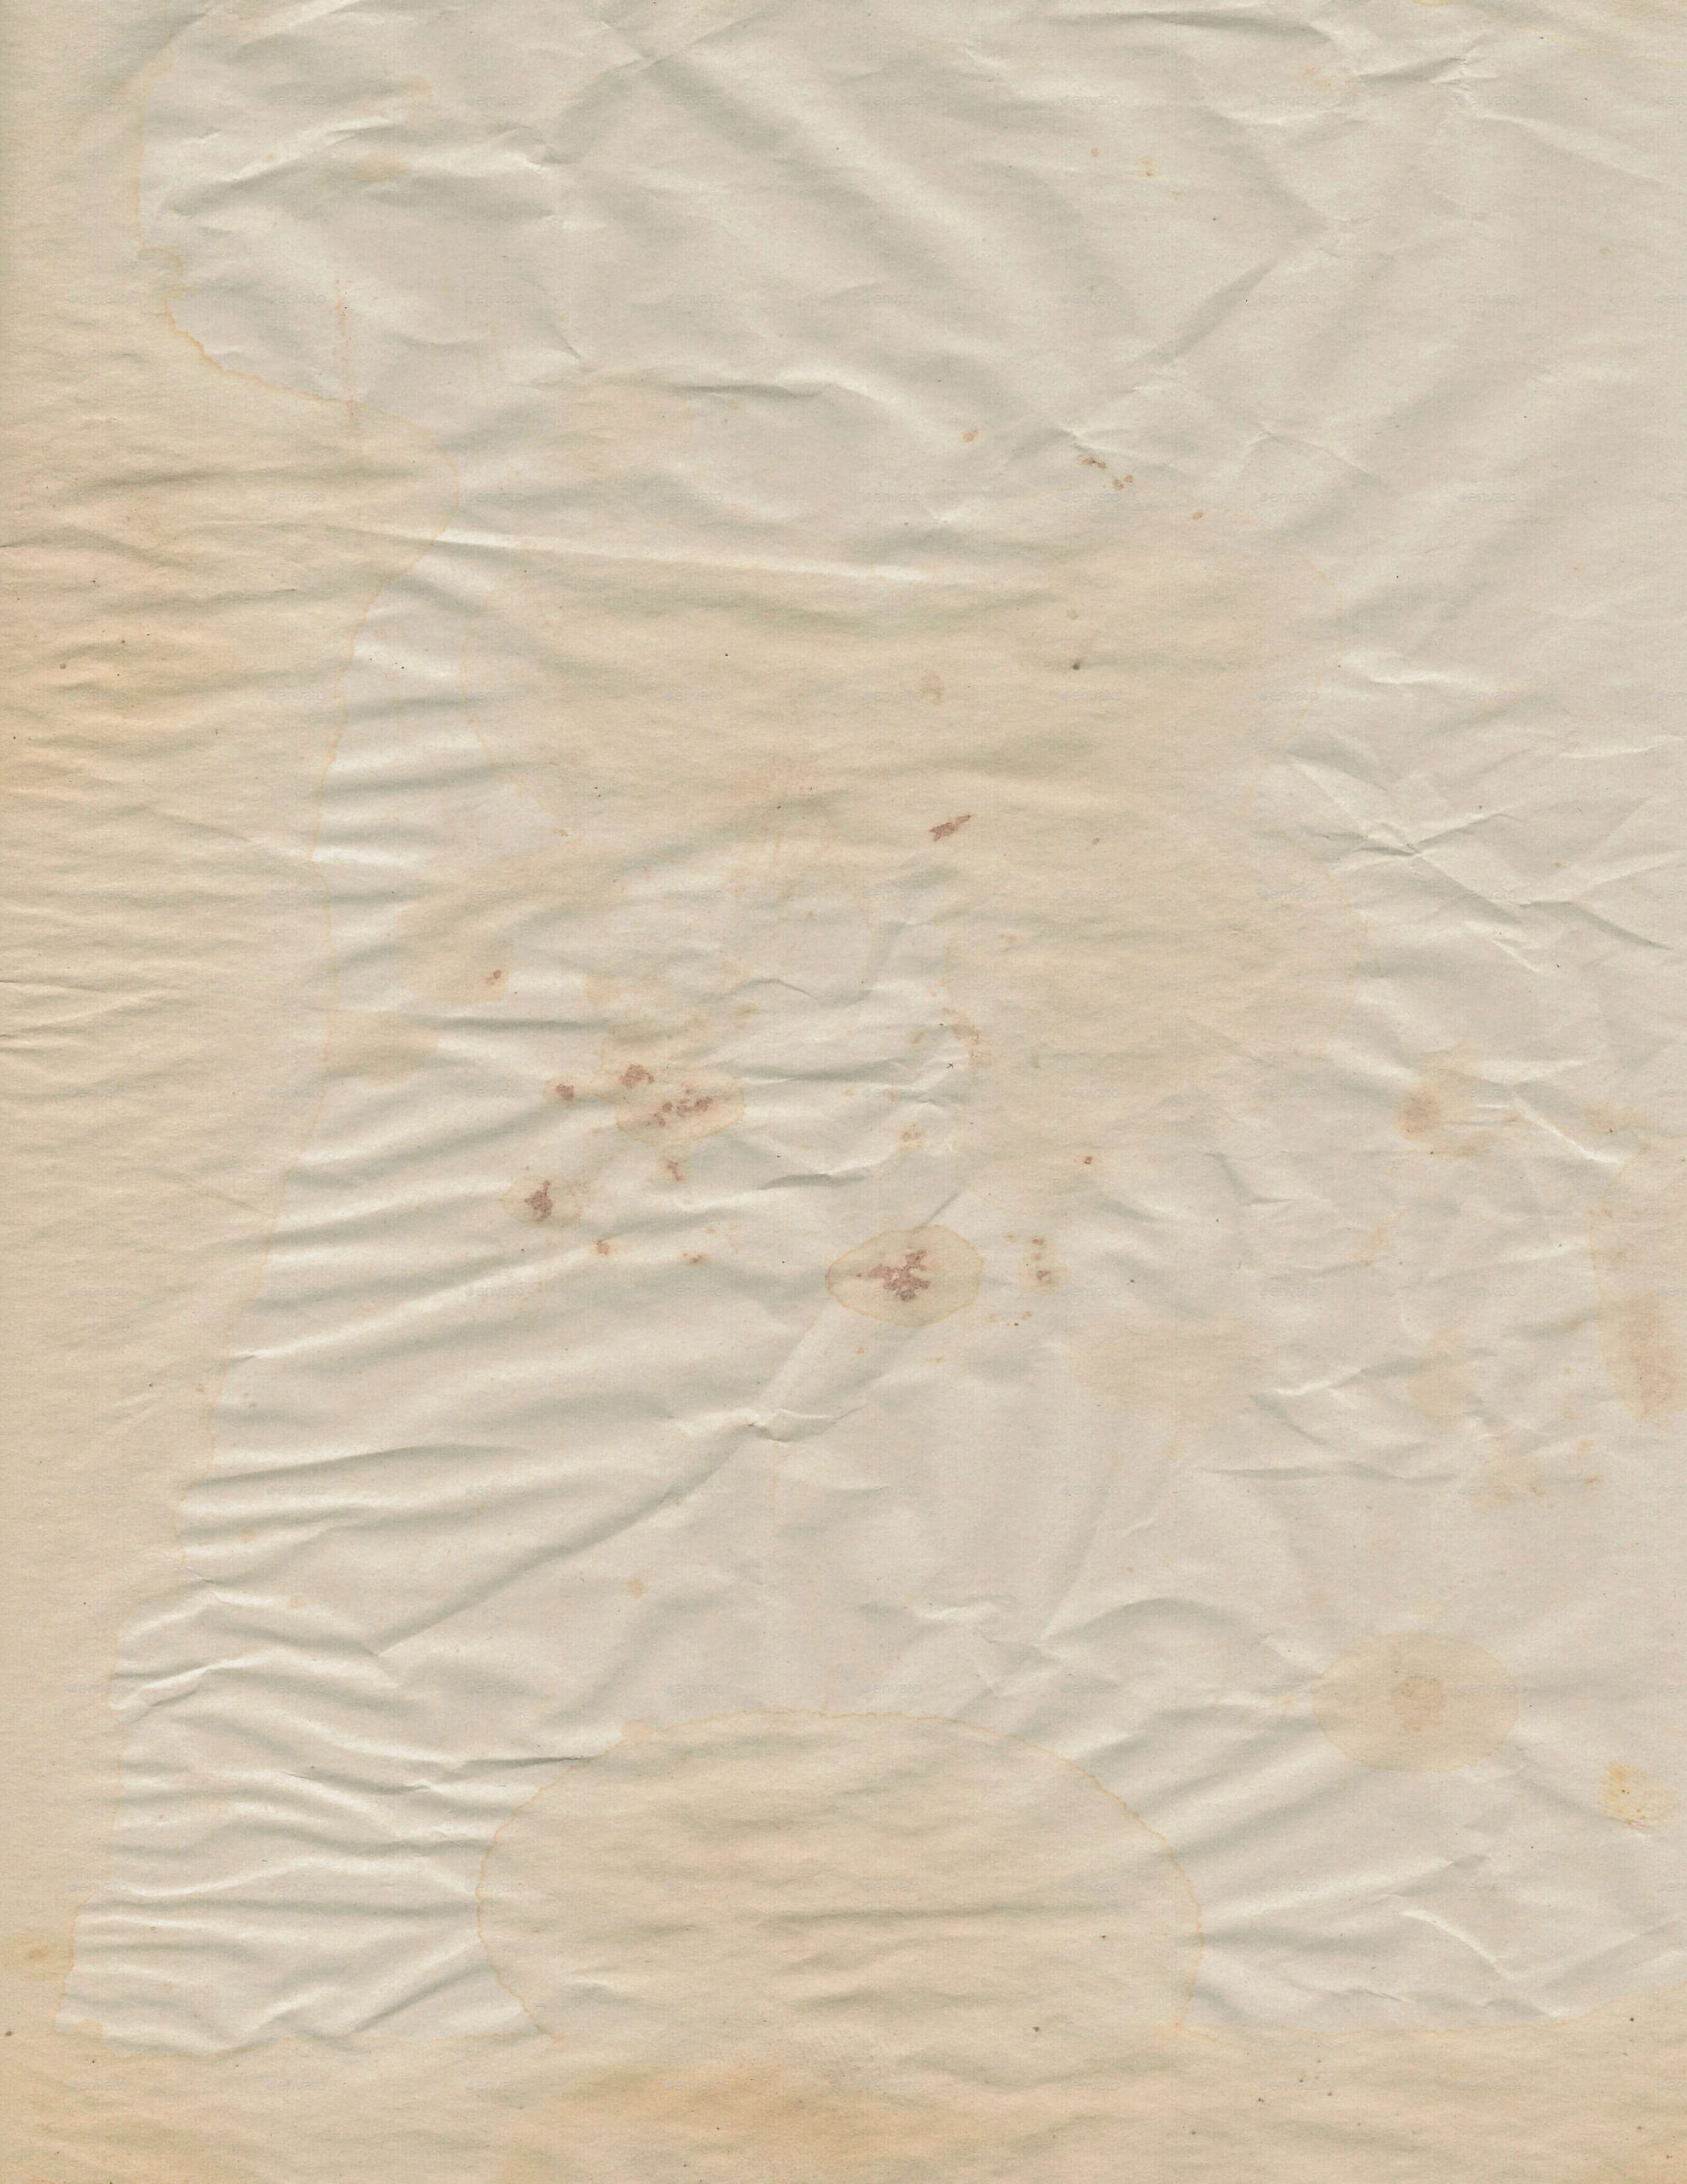 22 Aged Paper Textures (1)